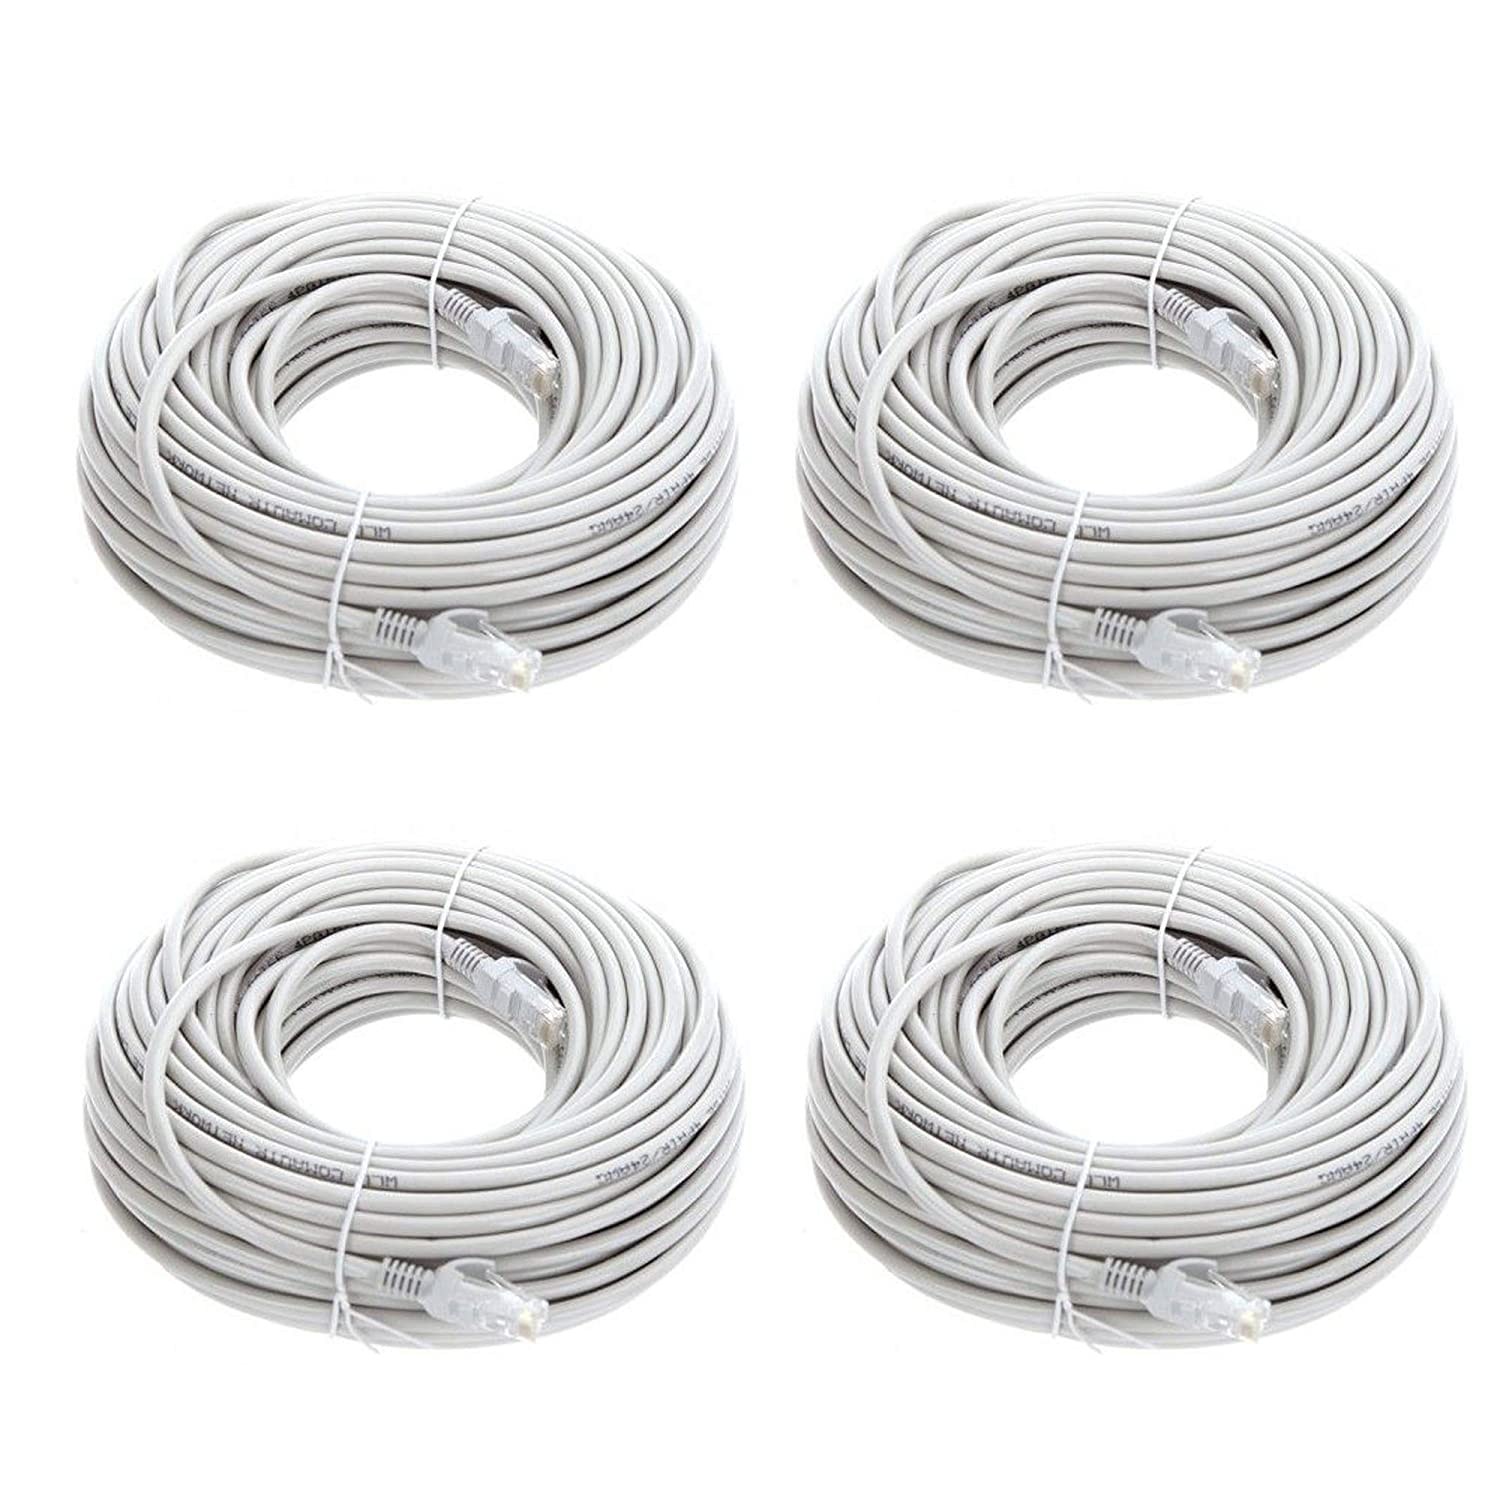 10 ft feet Cat5 Cable CAT5E RJ45 LAN Network Ethernet Router Switch Patch Cord